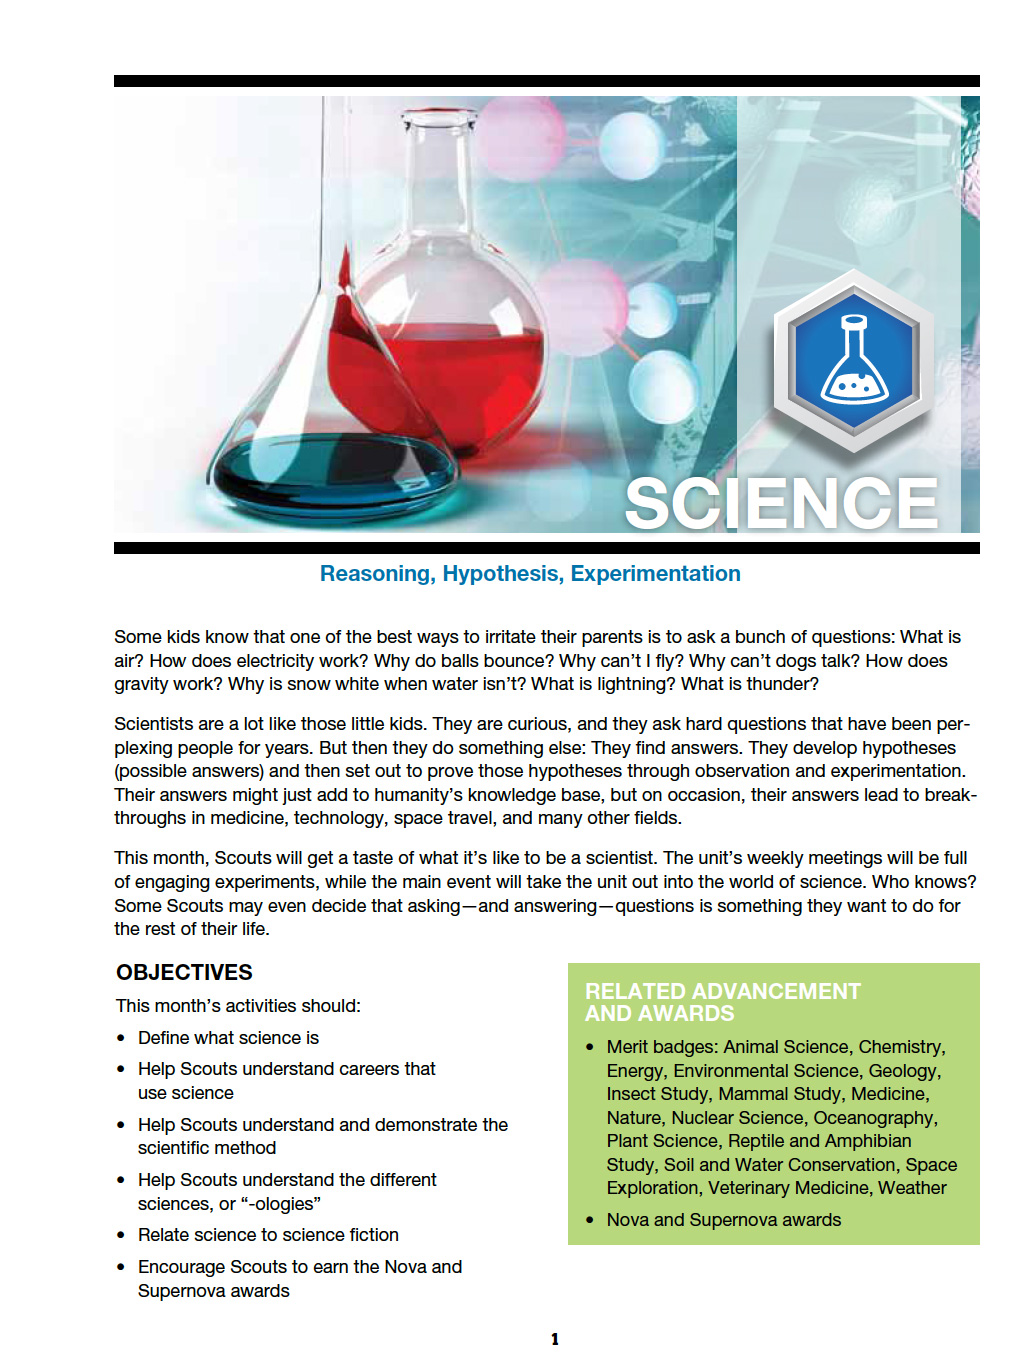 Science-program-features-first-page